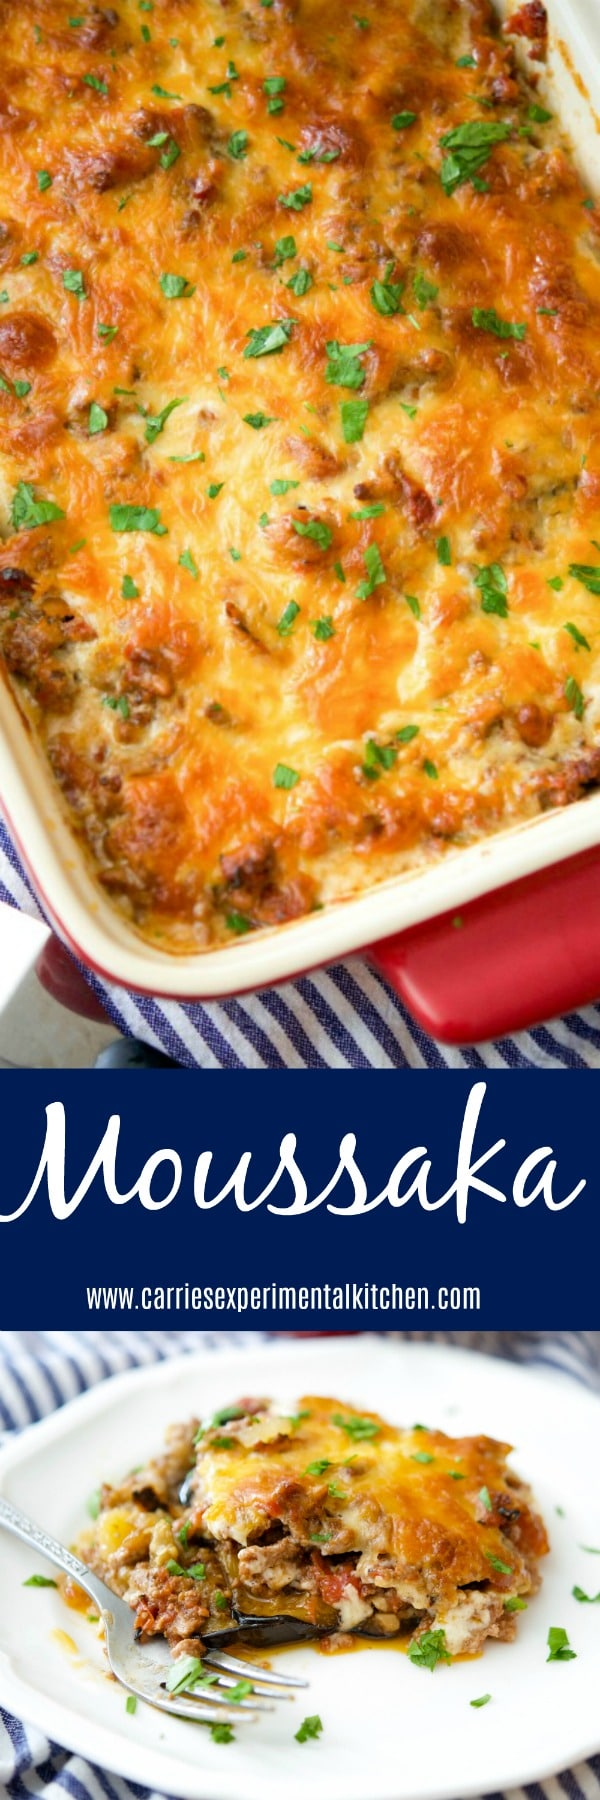 Moussakaoriginated from Greece and the Middle East and is casserole dish made with layers of potatoes, eggplant and ground beef; then topped with a cheesy Bechamel sauce.